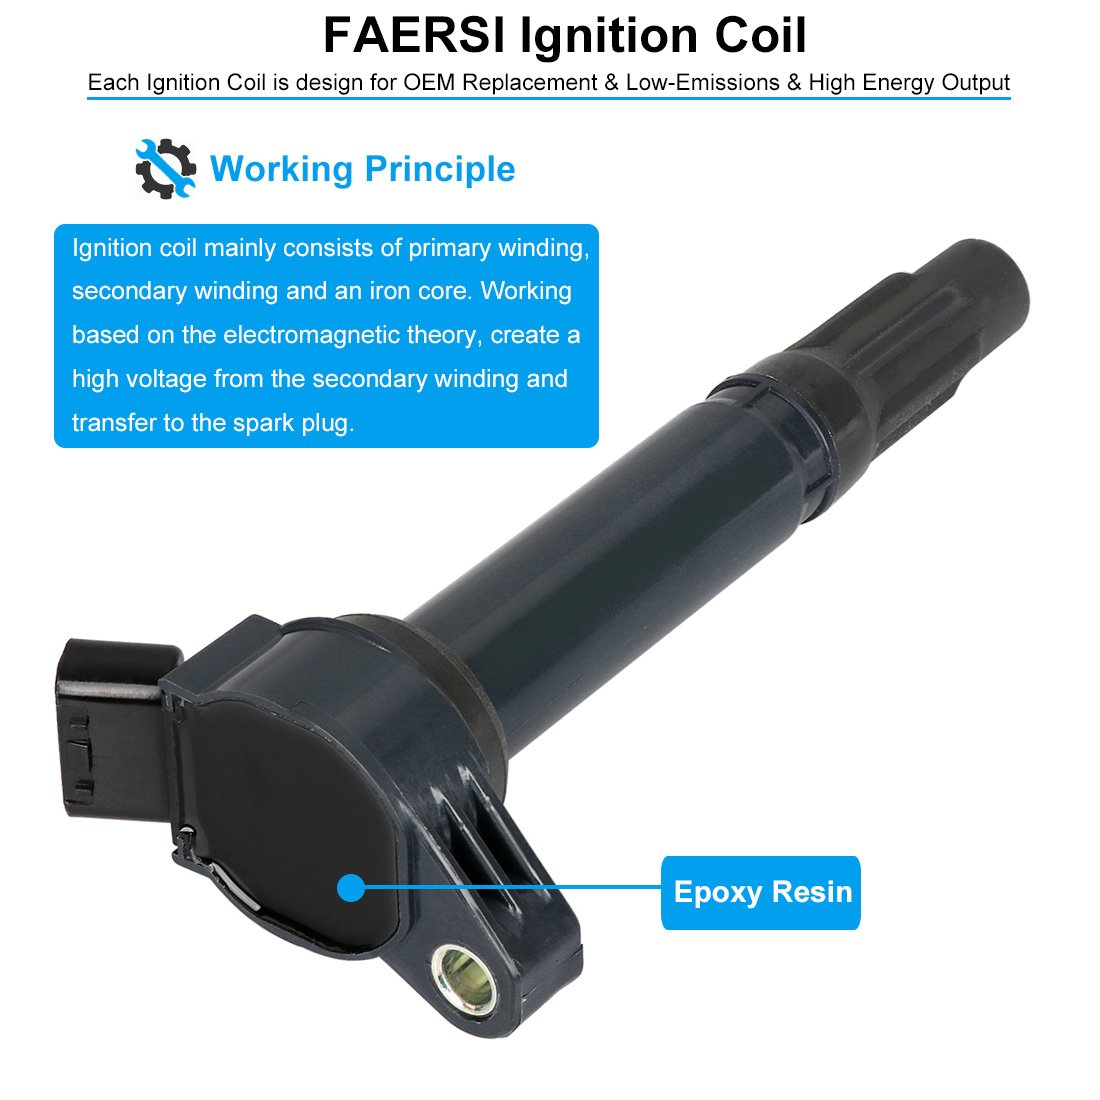 Ignition Coil Pack Of 1 Replaces 12570616 D510c For Cadillac Chevy Gmc Envoy Spark Plugs Pontiac 53l